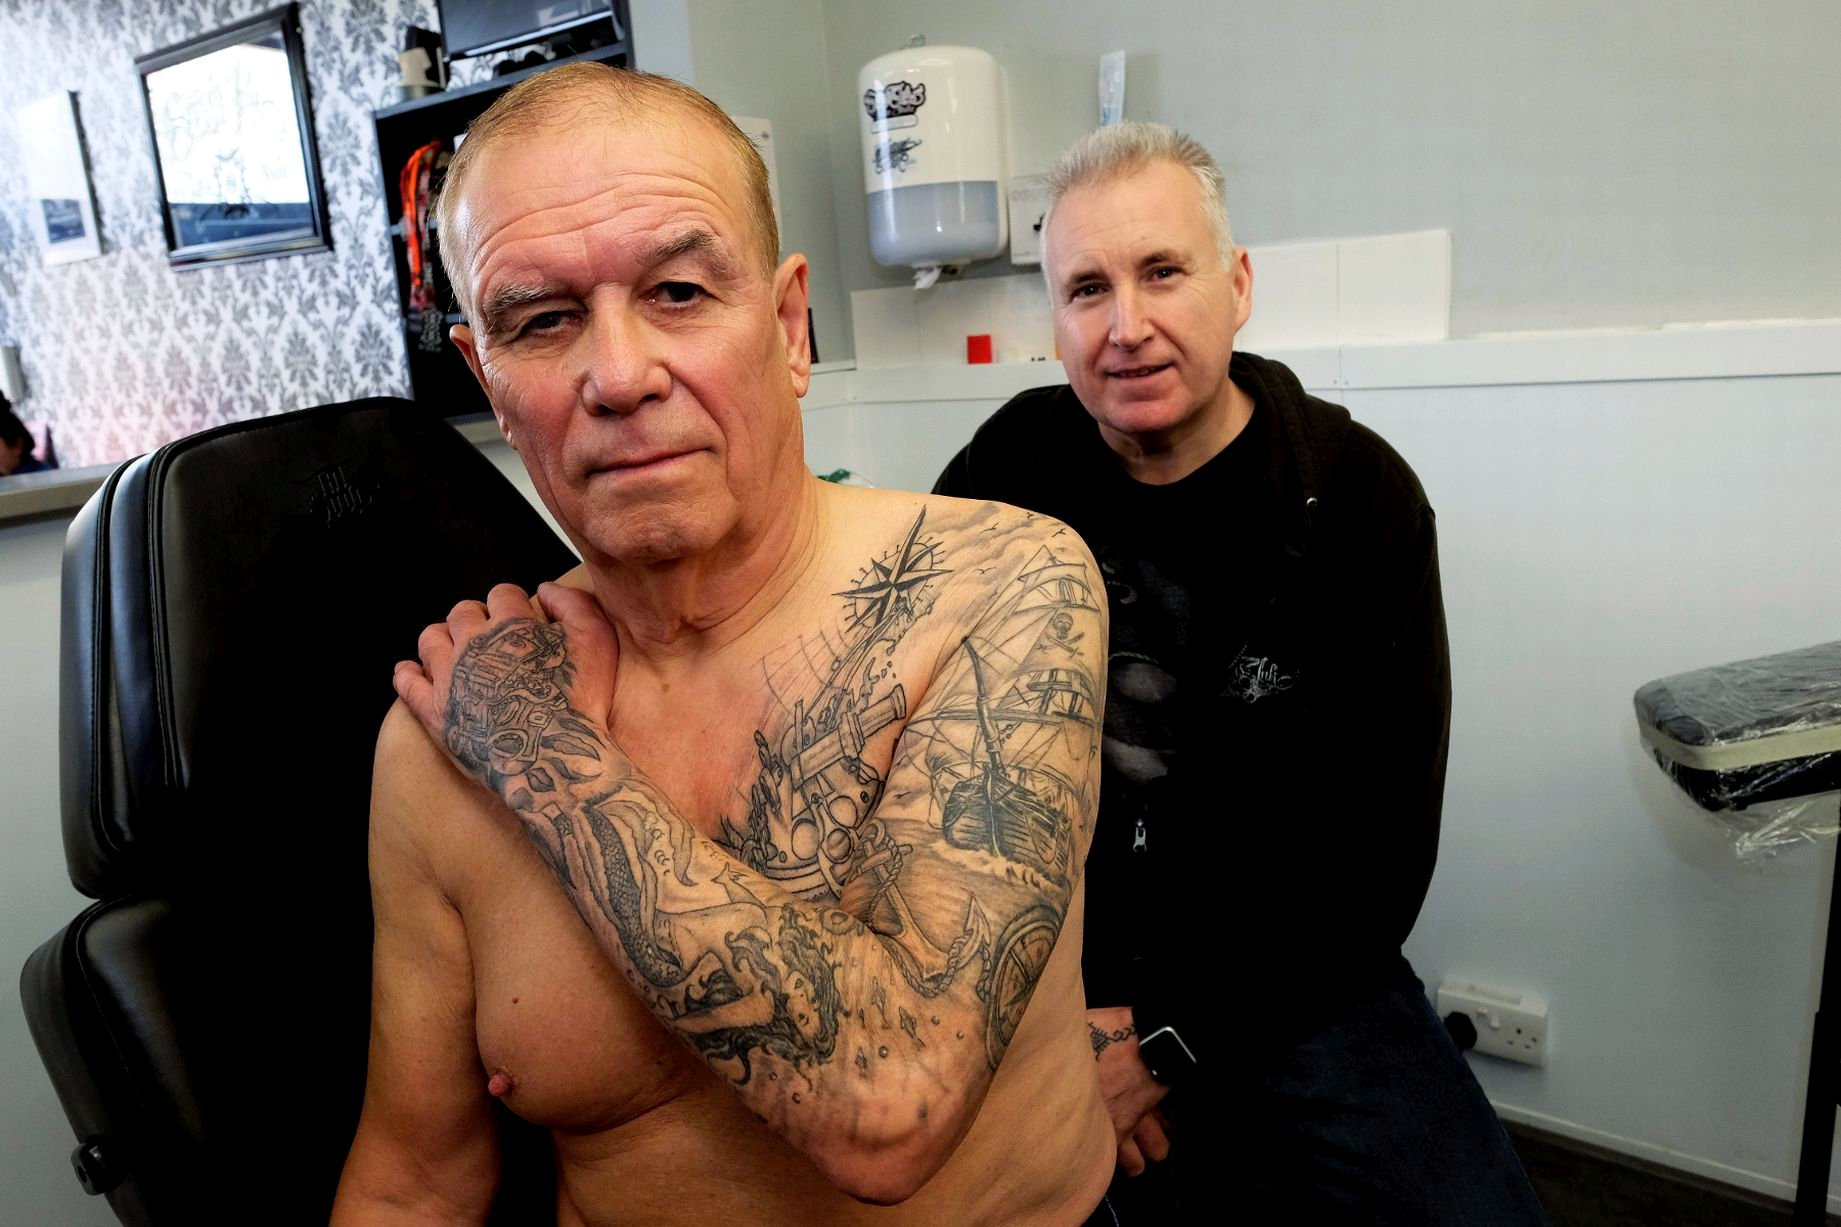 Grandad, Robert Luff, 73, who says he has not given a second thought to the occasional funny look since he discovered a passion for tattoos a year ago - Pictured with tattooist Mark Pennell. See SWNS story SWBRink. Robert, who has lived in Sea Mills, Bristol, his whole life, came to the world of body art late, but he is making up for lost time now. After his wife Marilyn bought him a voucher for Shirehampton?s Serious Ink Tattoo Studio for Christmas in 2017, it took him a few months to pluck up the courage for a visit. But he has fallen in love with tattoos and gradually built up a full sleeve on his left arm, spreading onto the left half of his chest. Robert, who built and repaired ships at Bristol Harbour for more than 15 years, says the ink is partly a way of honouring his former workmates, many of whom have passed away. All of the tattoos are connected to the sea. A grand ship is the centrepiece, on his upper arm, surrounded by a treasure chest, cannon, mermaid and other maritime art.